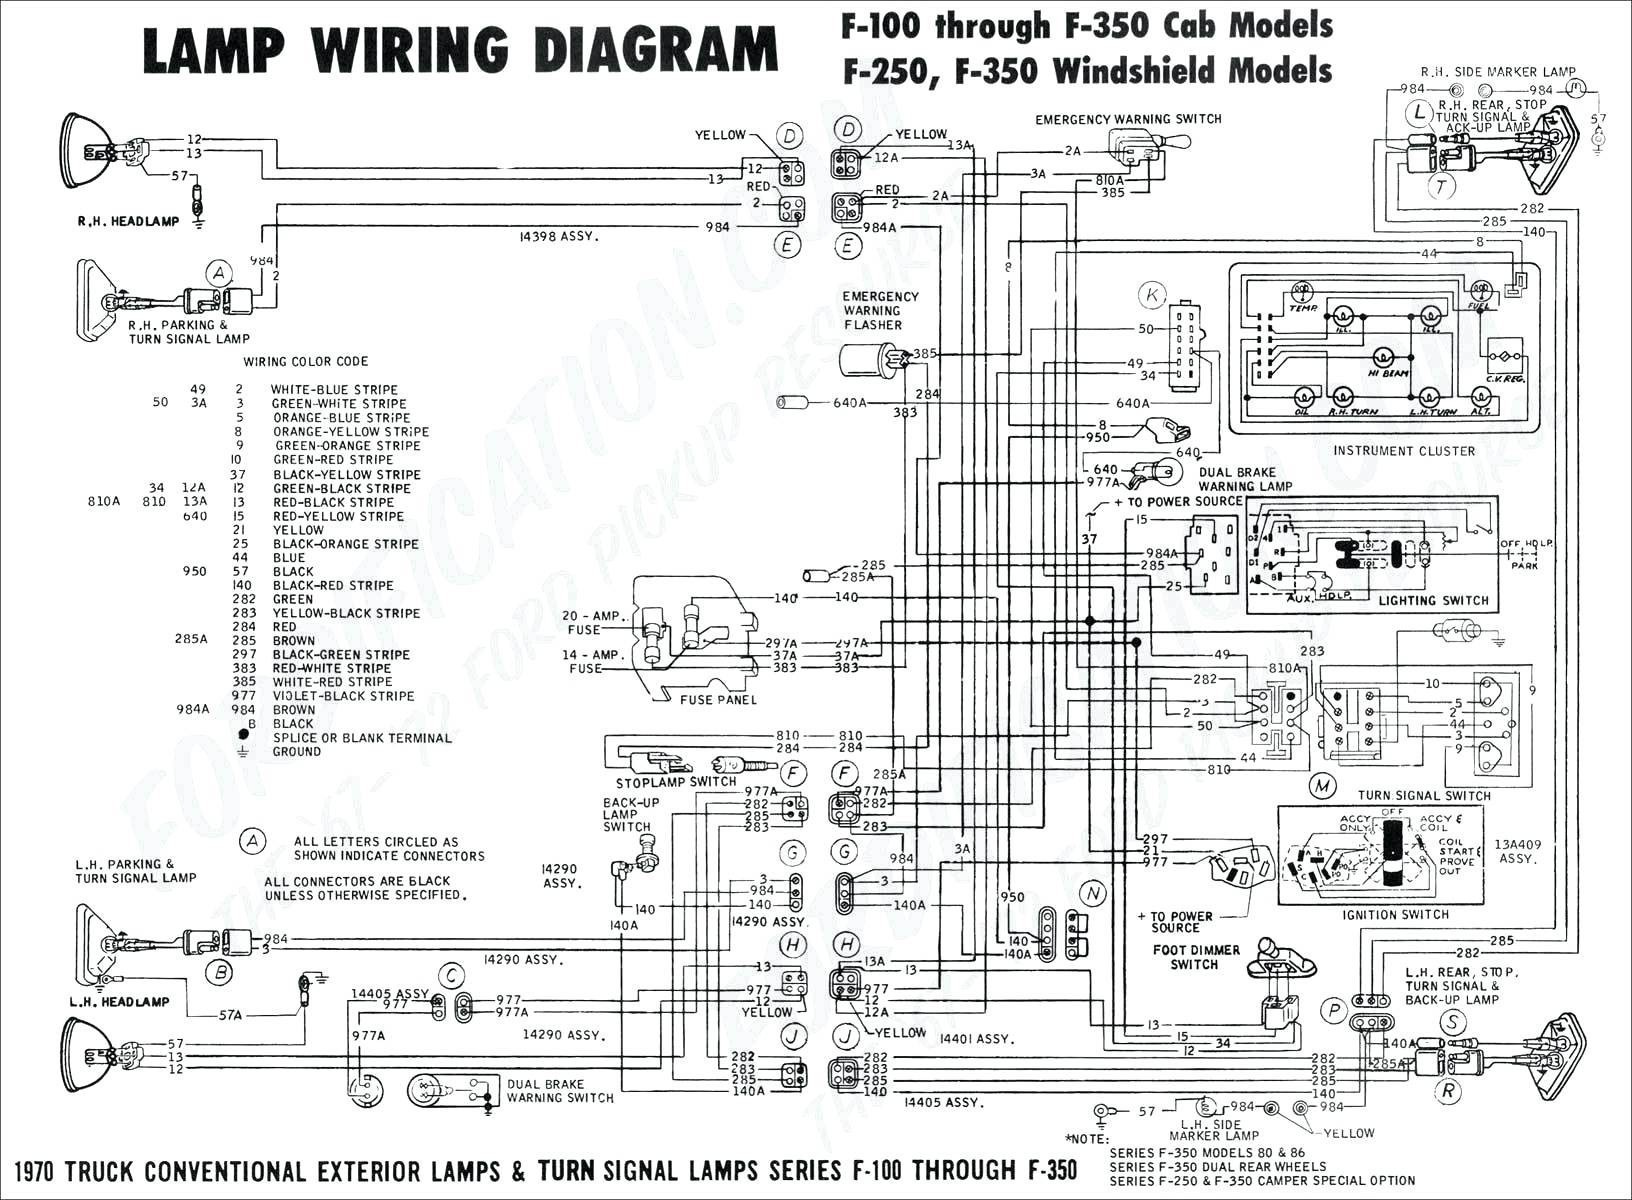 hight resolution of caterpillar c12 engine diagram cat excavator wiring diagrams worksheet and wiring diagram of caterpillar c12